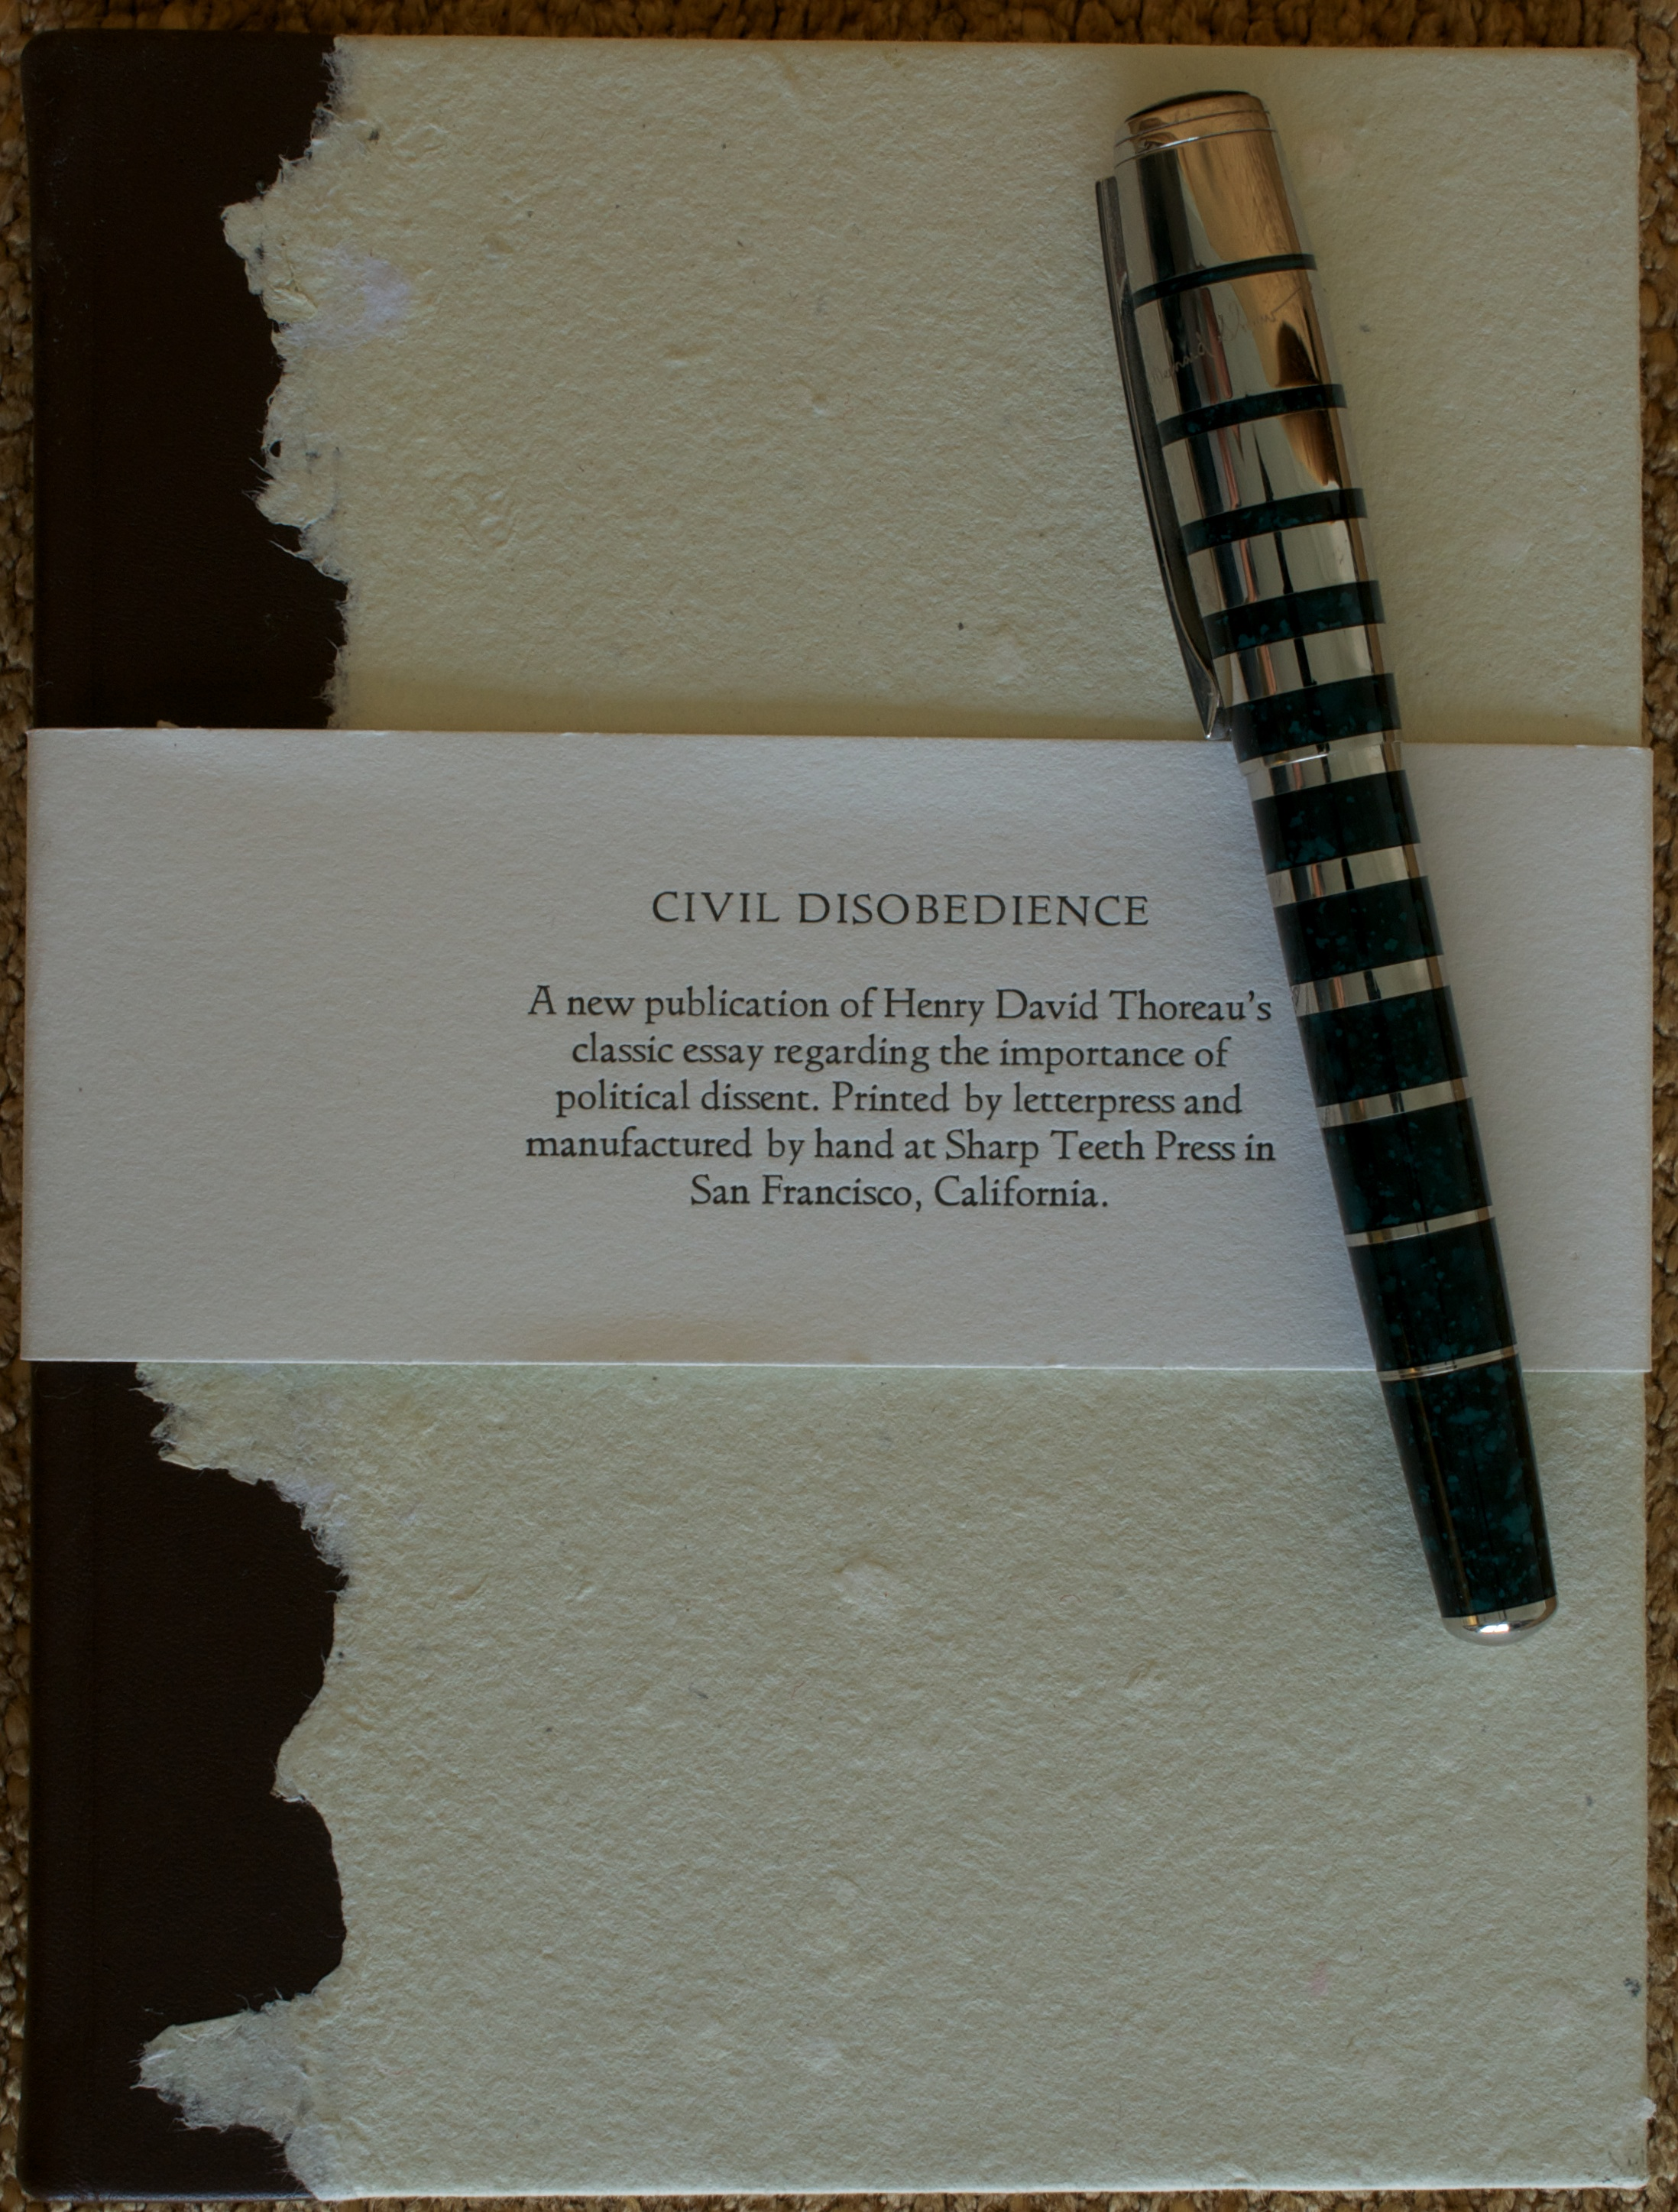 on disobedience and other essays civil disobedience by henry david  civil disobedience by henry david thoreau published by sharp civil disobedience 1